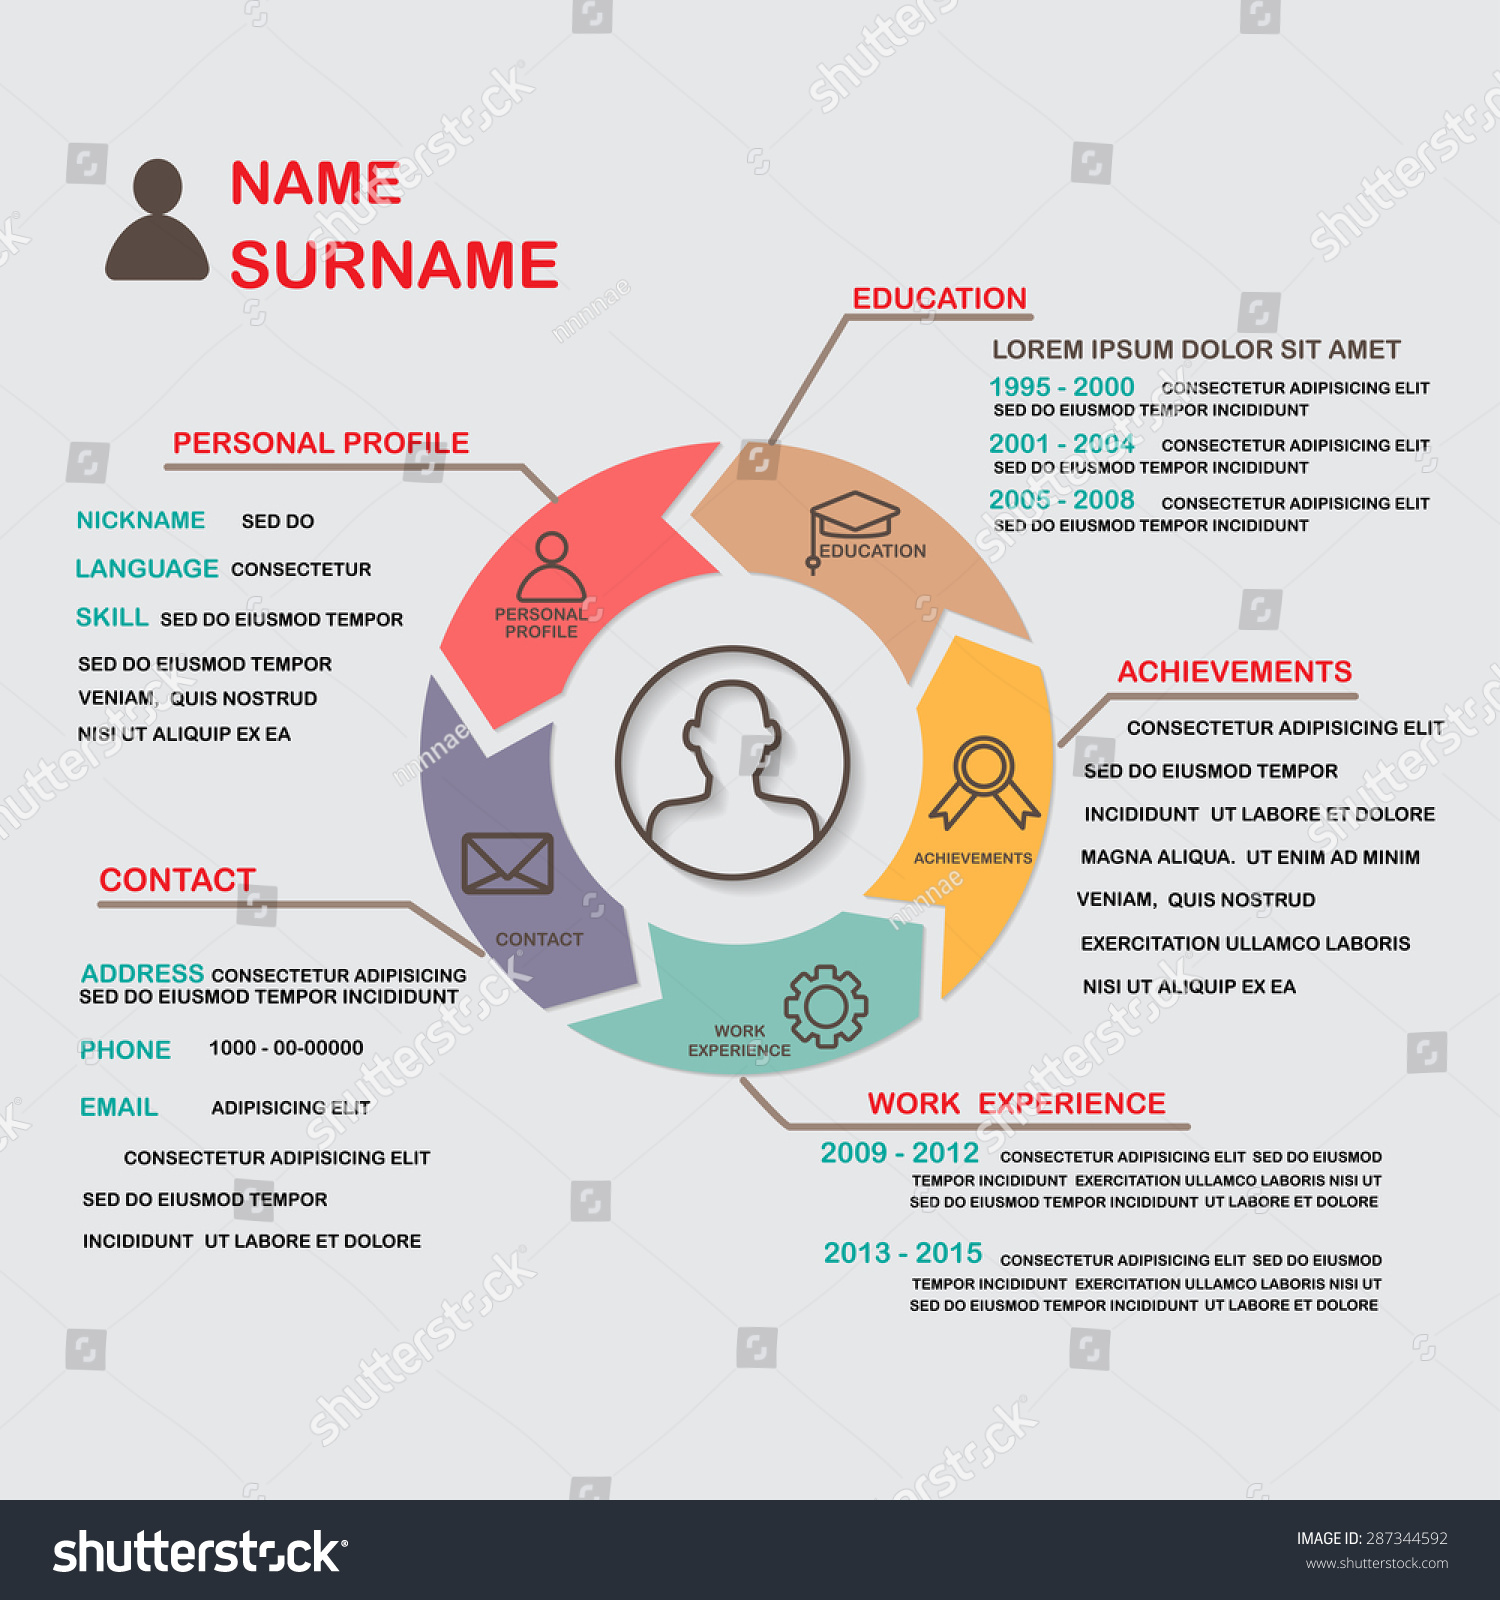 Resume cv template infographics background element stock for Personal profile design templates